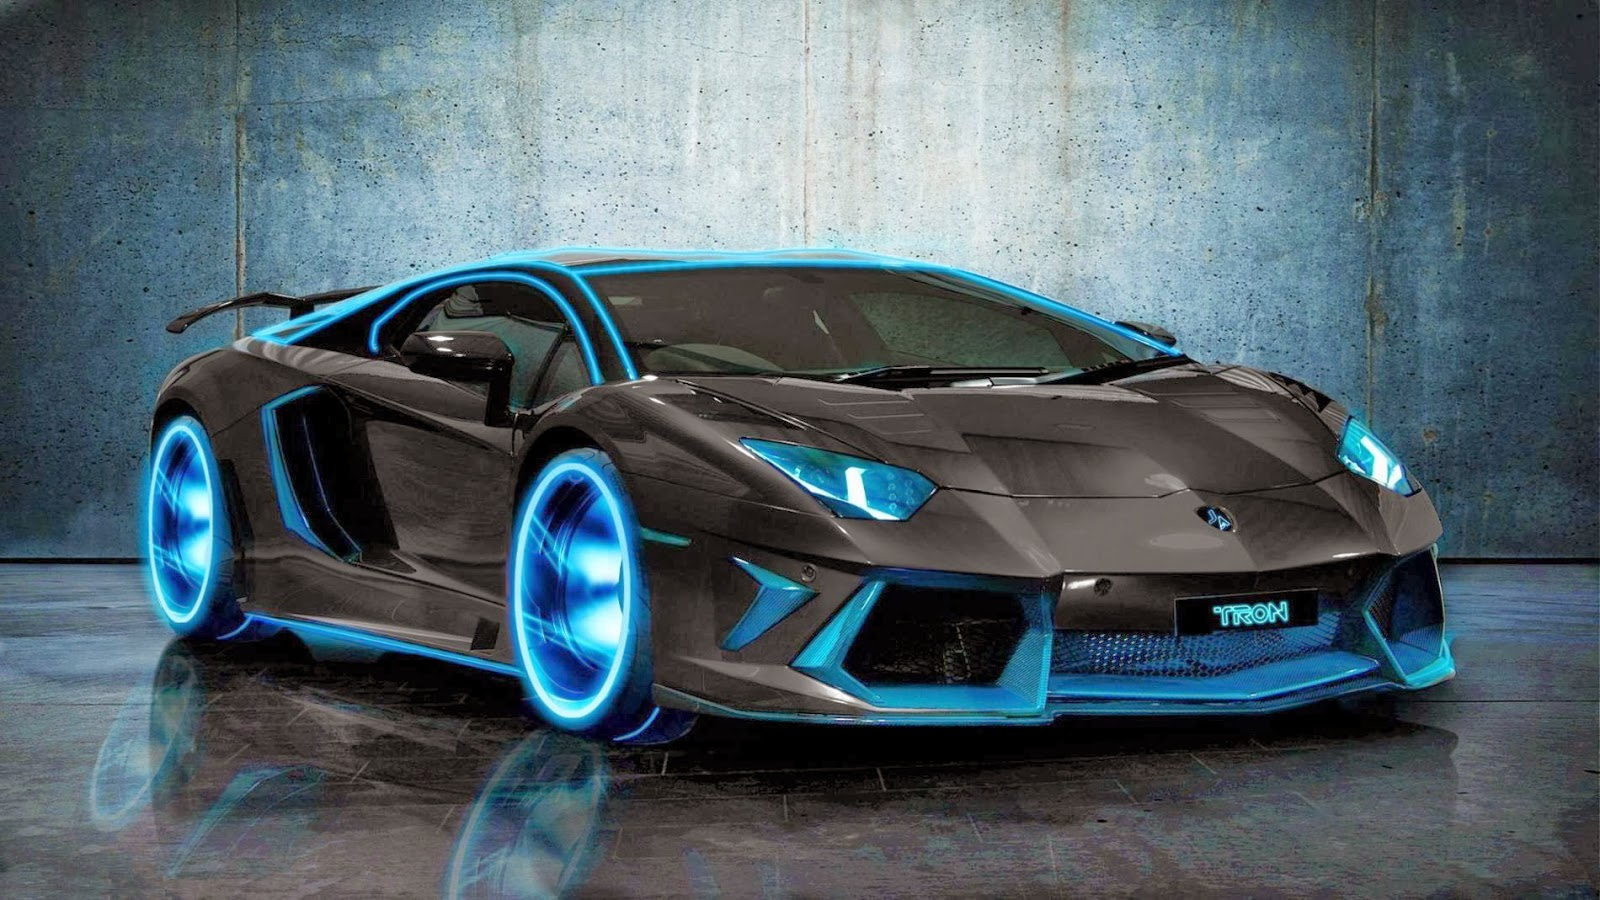 tron lamborghini aventador wallpapers - TRON Lamborghini Aventador Wallpaper HD Wallpapers